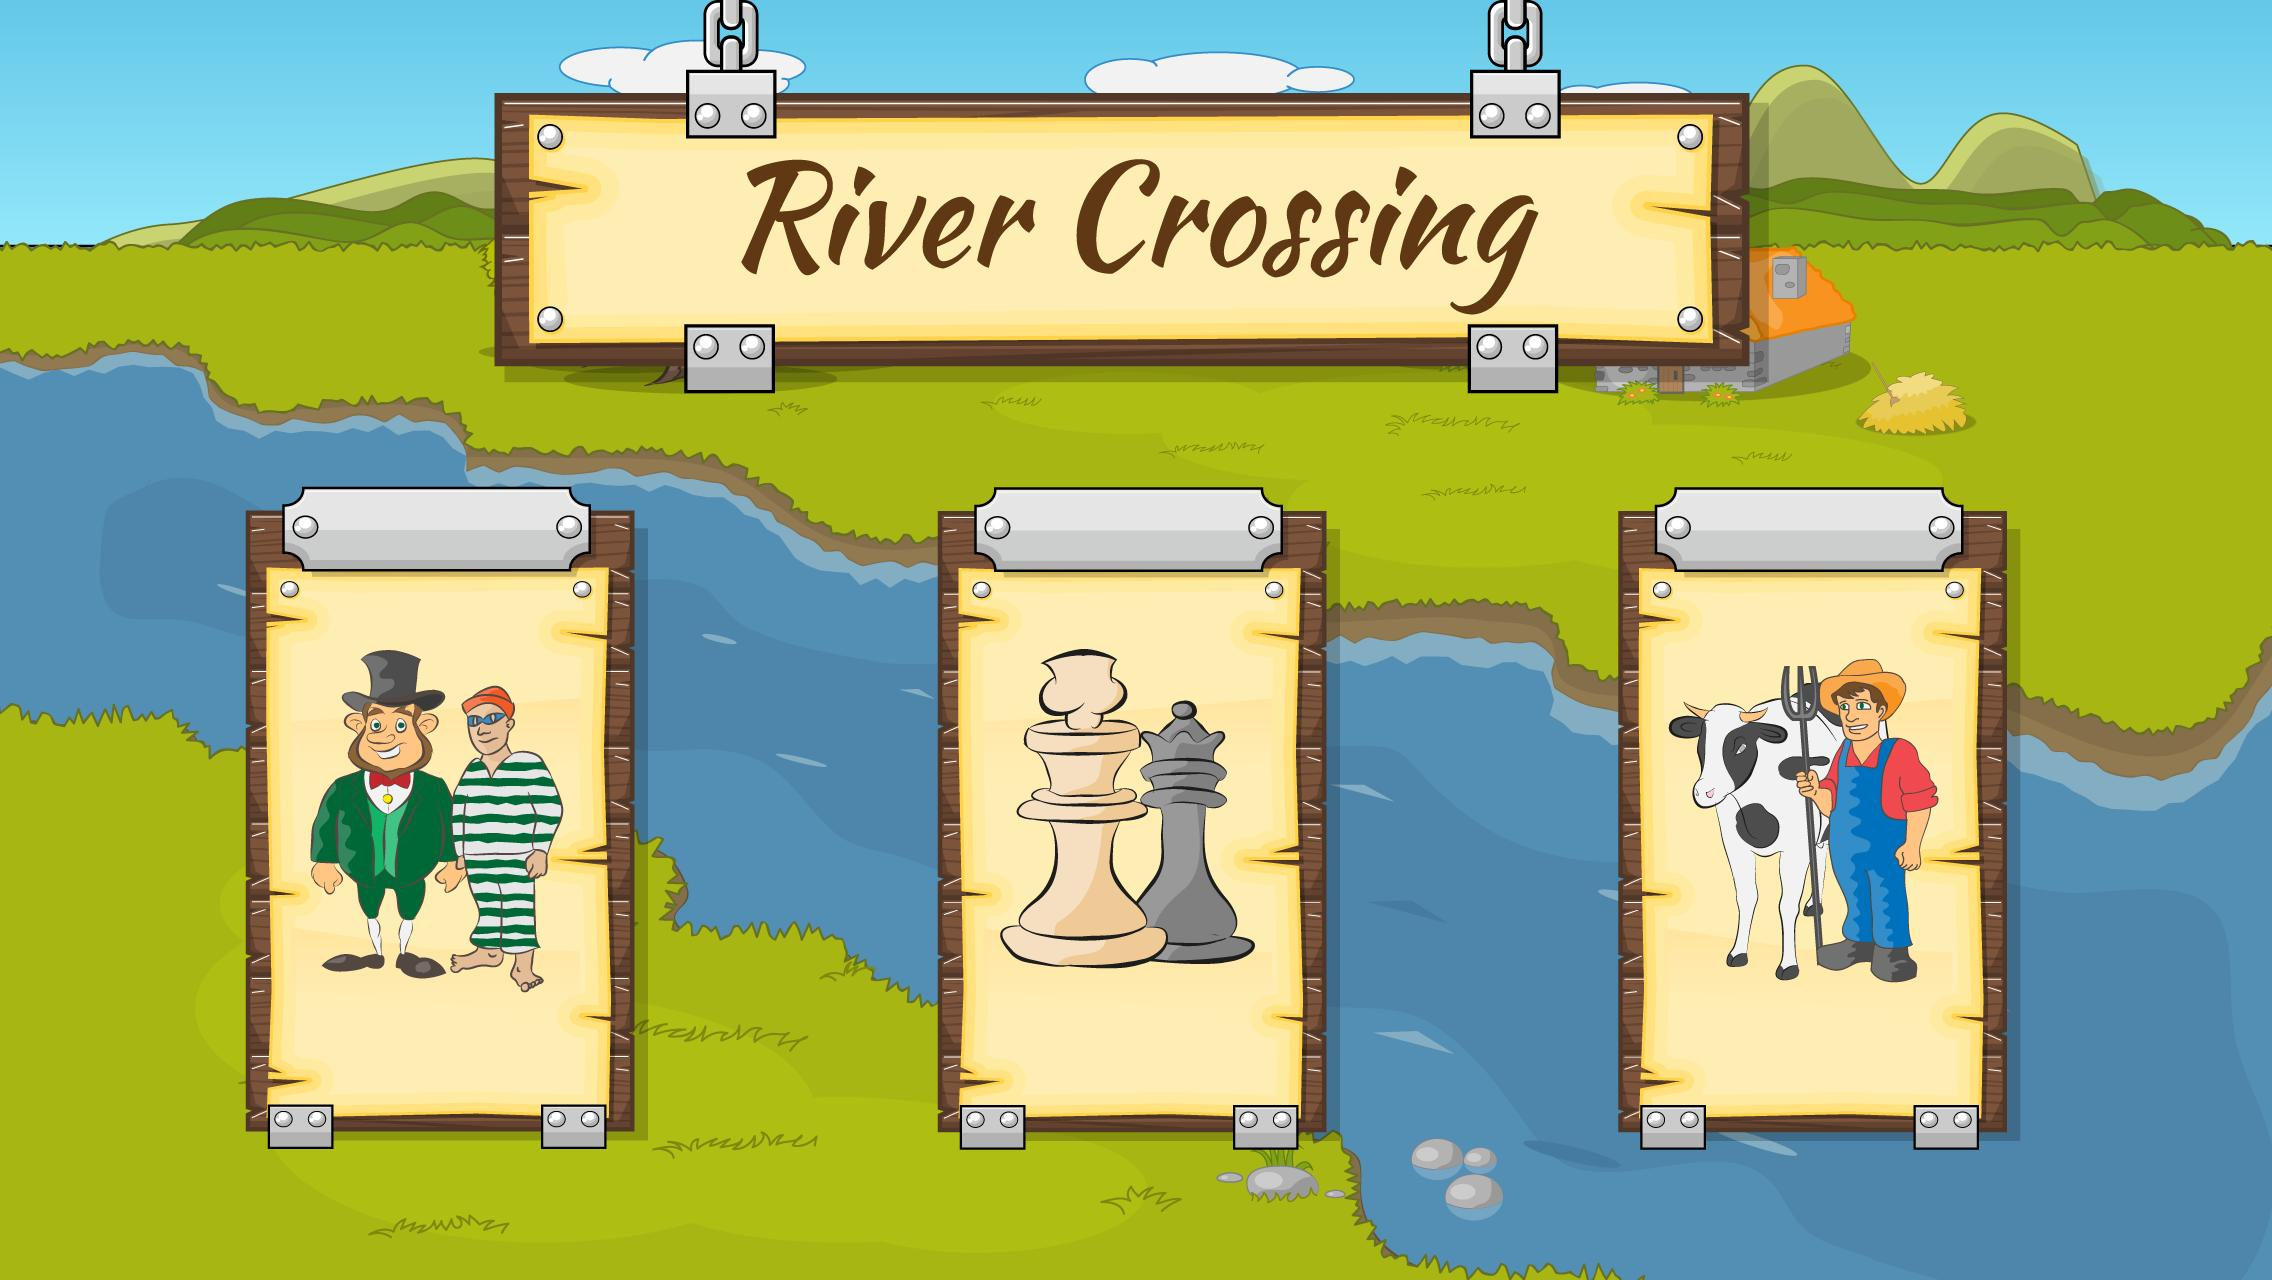 River Crossing IQ Logic Puzzles & Fun Brain Games 1.2.2 Screenshot 1